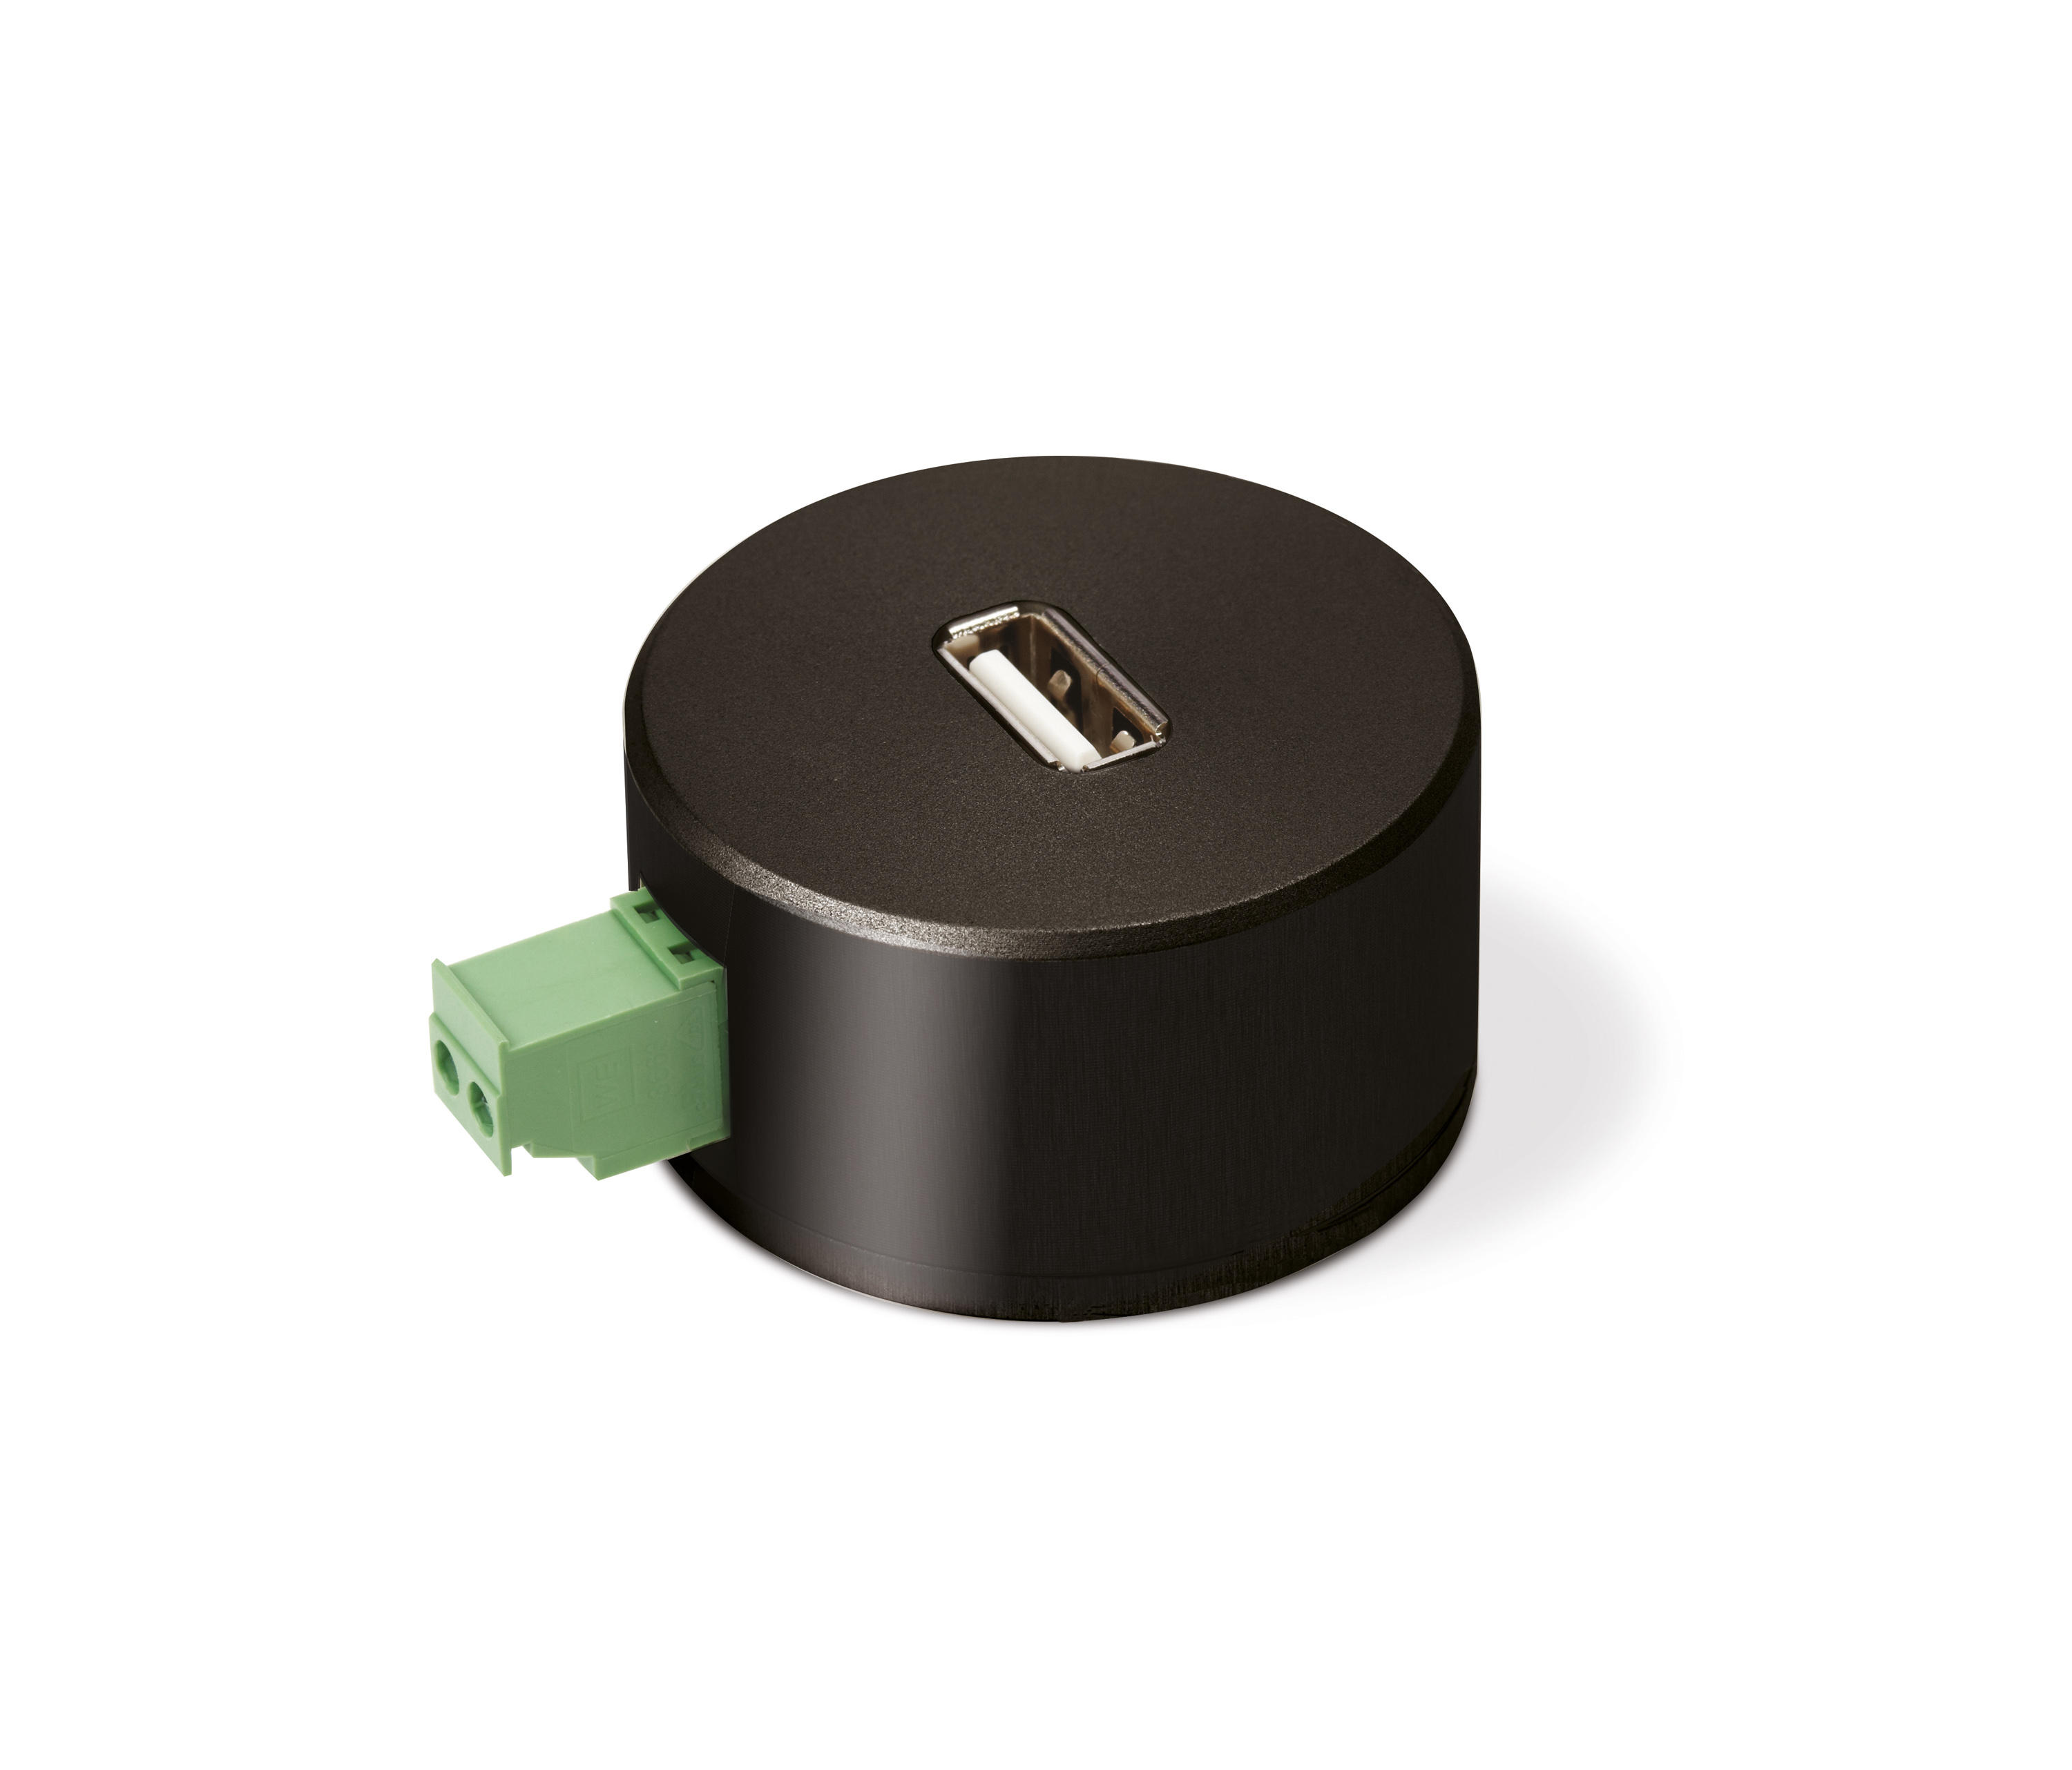 PUCK USB CHARGER - USB power sockets from Basalte | Architonic